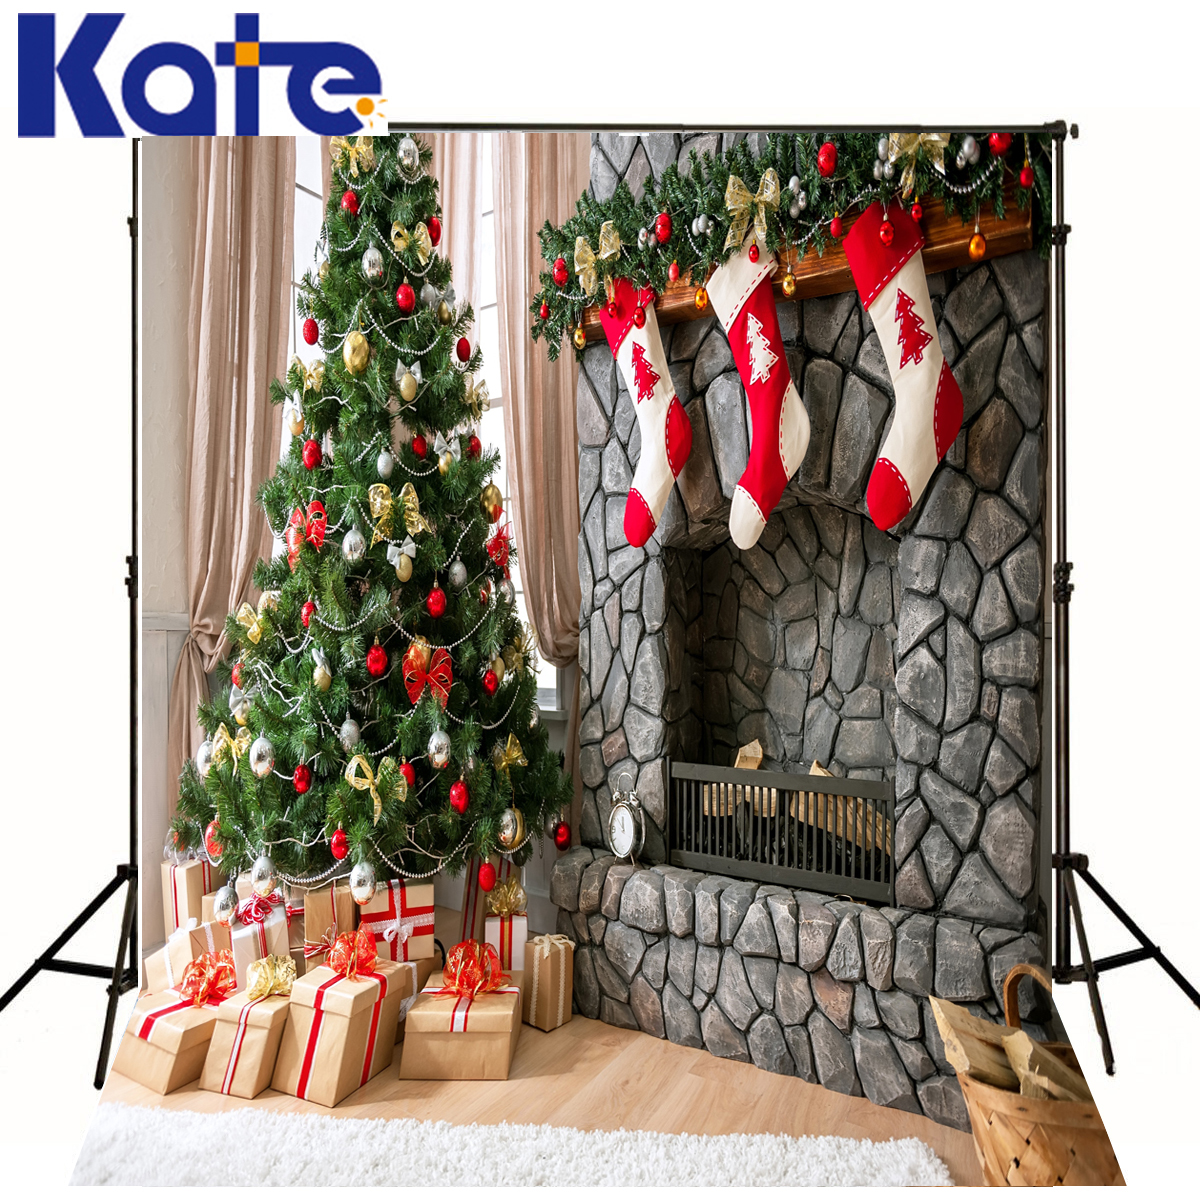 Christmas Backdrop Green Tree Red Socks Photography X-mas Props Background For Photo Fond Studio Shoot Camera Child Kate christmas background photography backgrounds christmas fond studio photo vinyle photography studio backdrop christmas tree